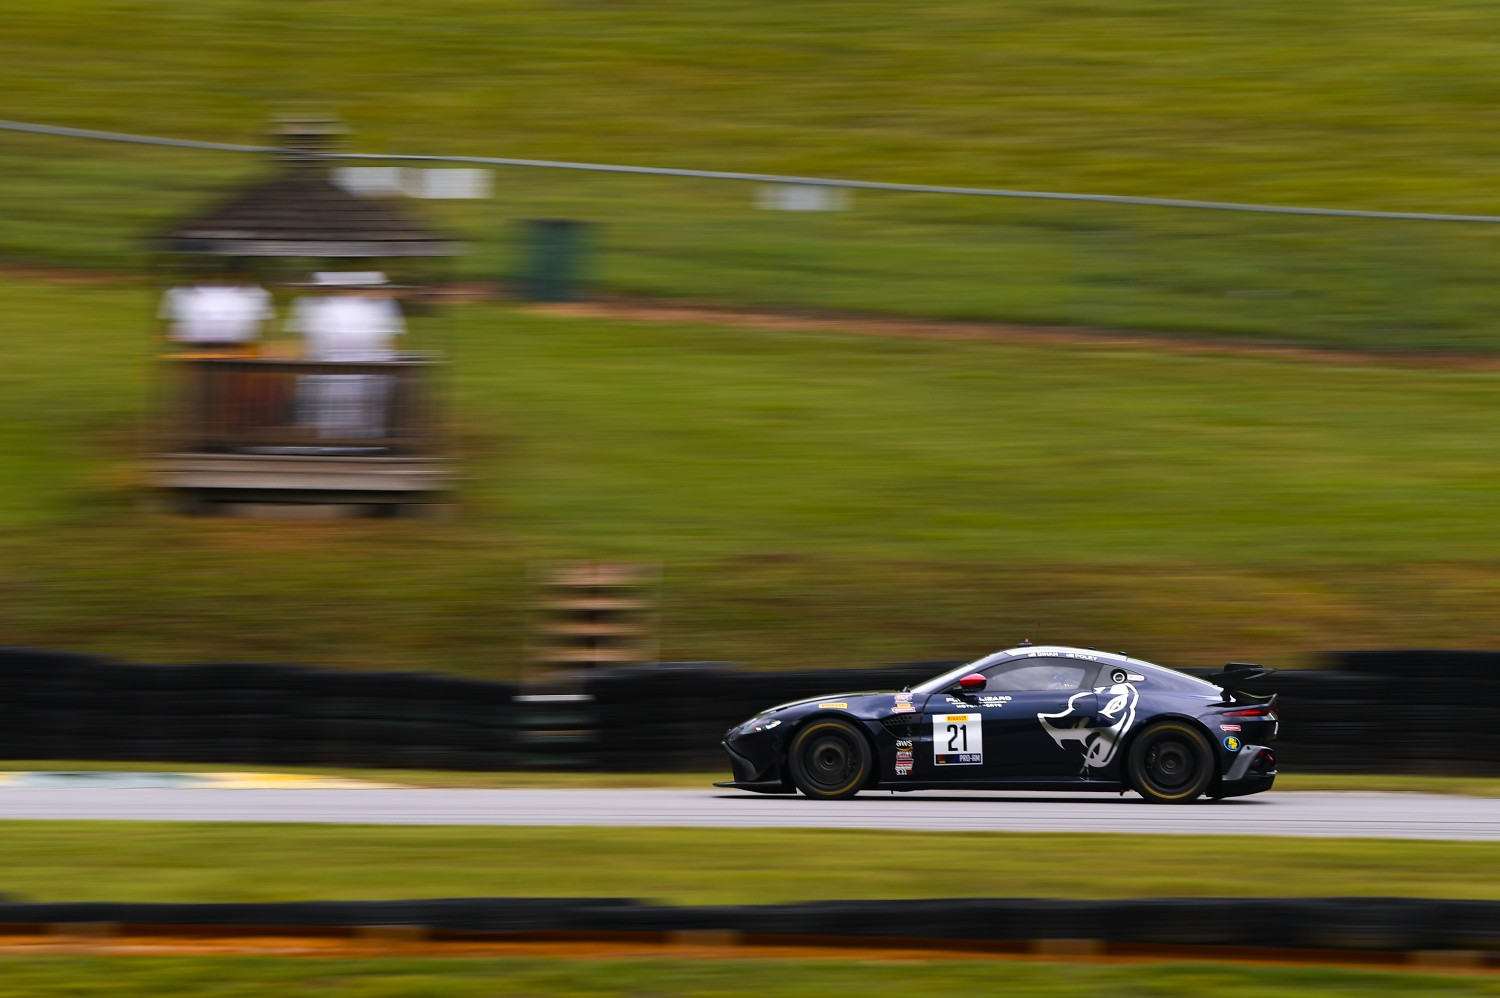 #21 GT4 SprintX, Pro-Am, Flying Lizard Motorsports, Michael Dinan, Robby Foley, Aston Martin Vantage GT4, 2020 SRO Motorsports Group - VIRginia International Raceway, Alton VA  | SRO Motorsports Group